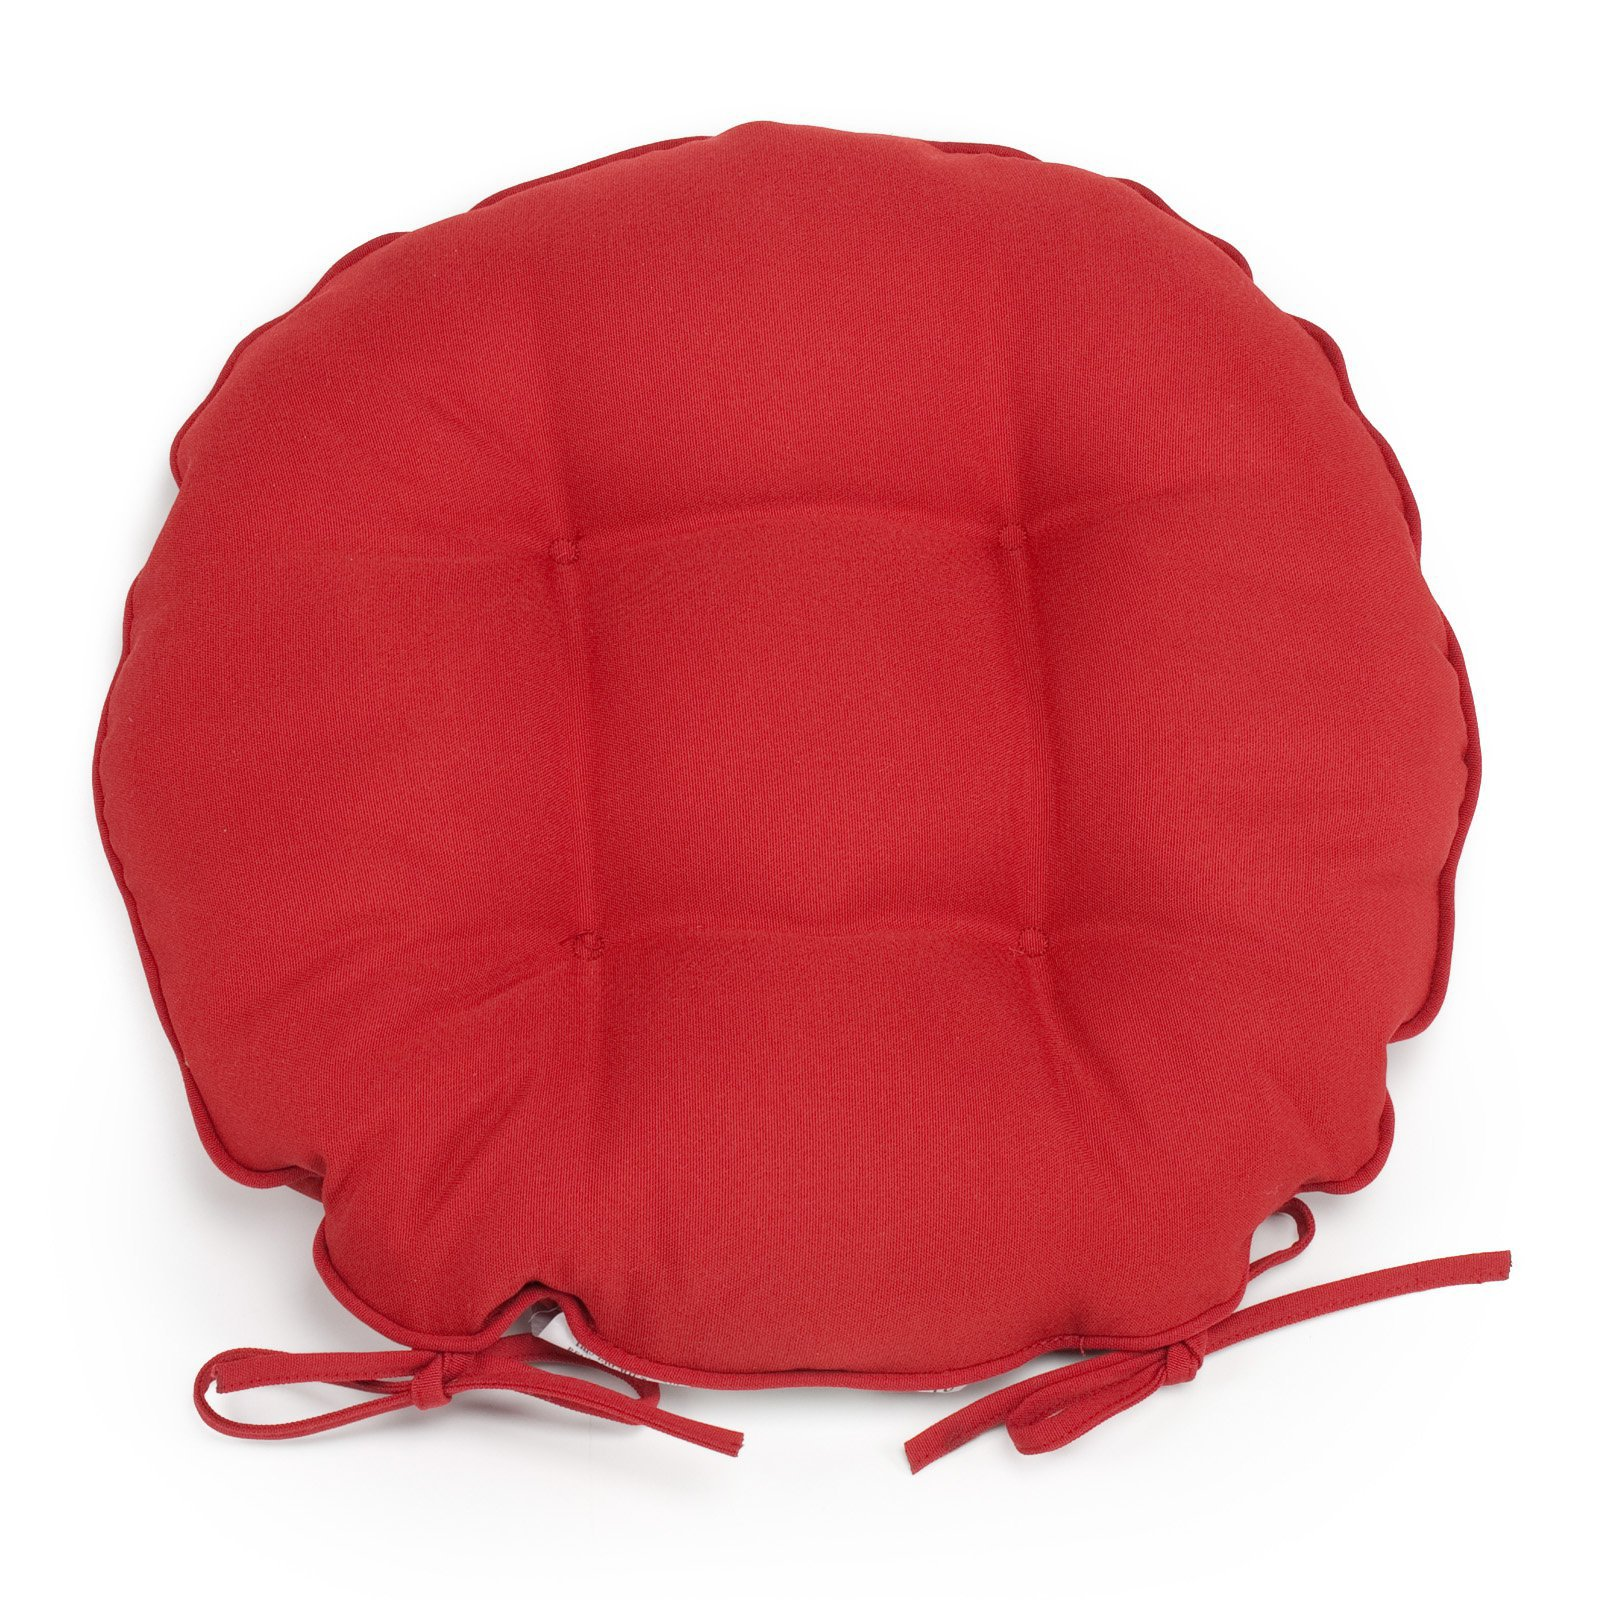 Coral Coast Classic 16 in. Round Bistro Outdoor Seat Cushion - Set of 2